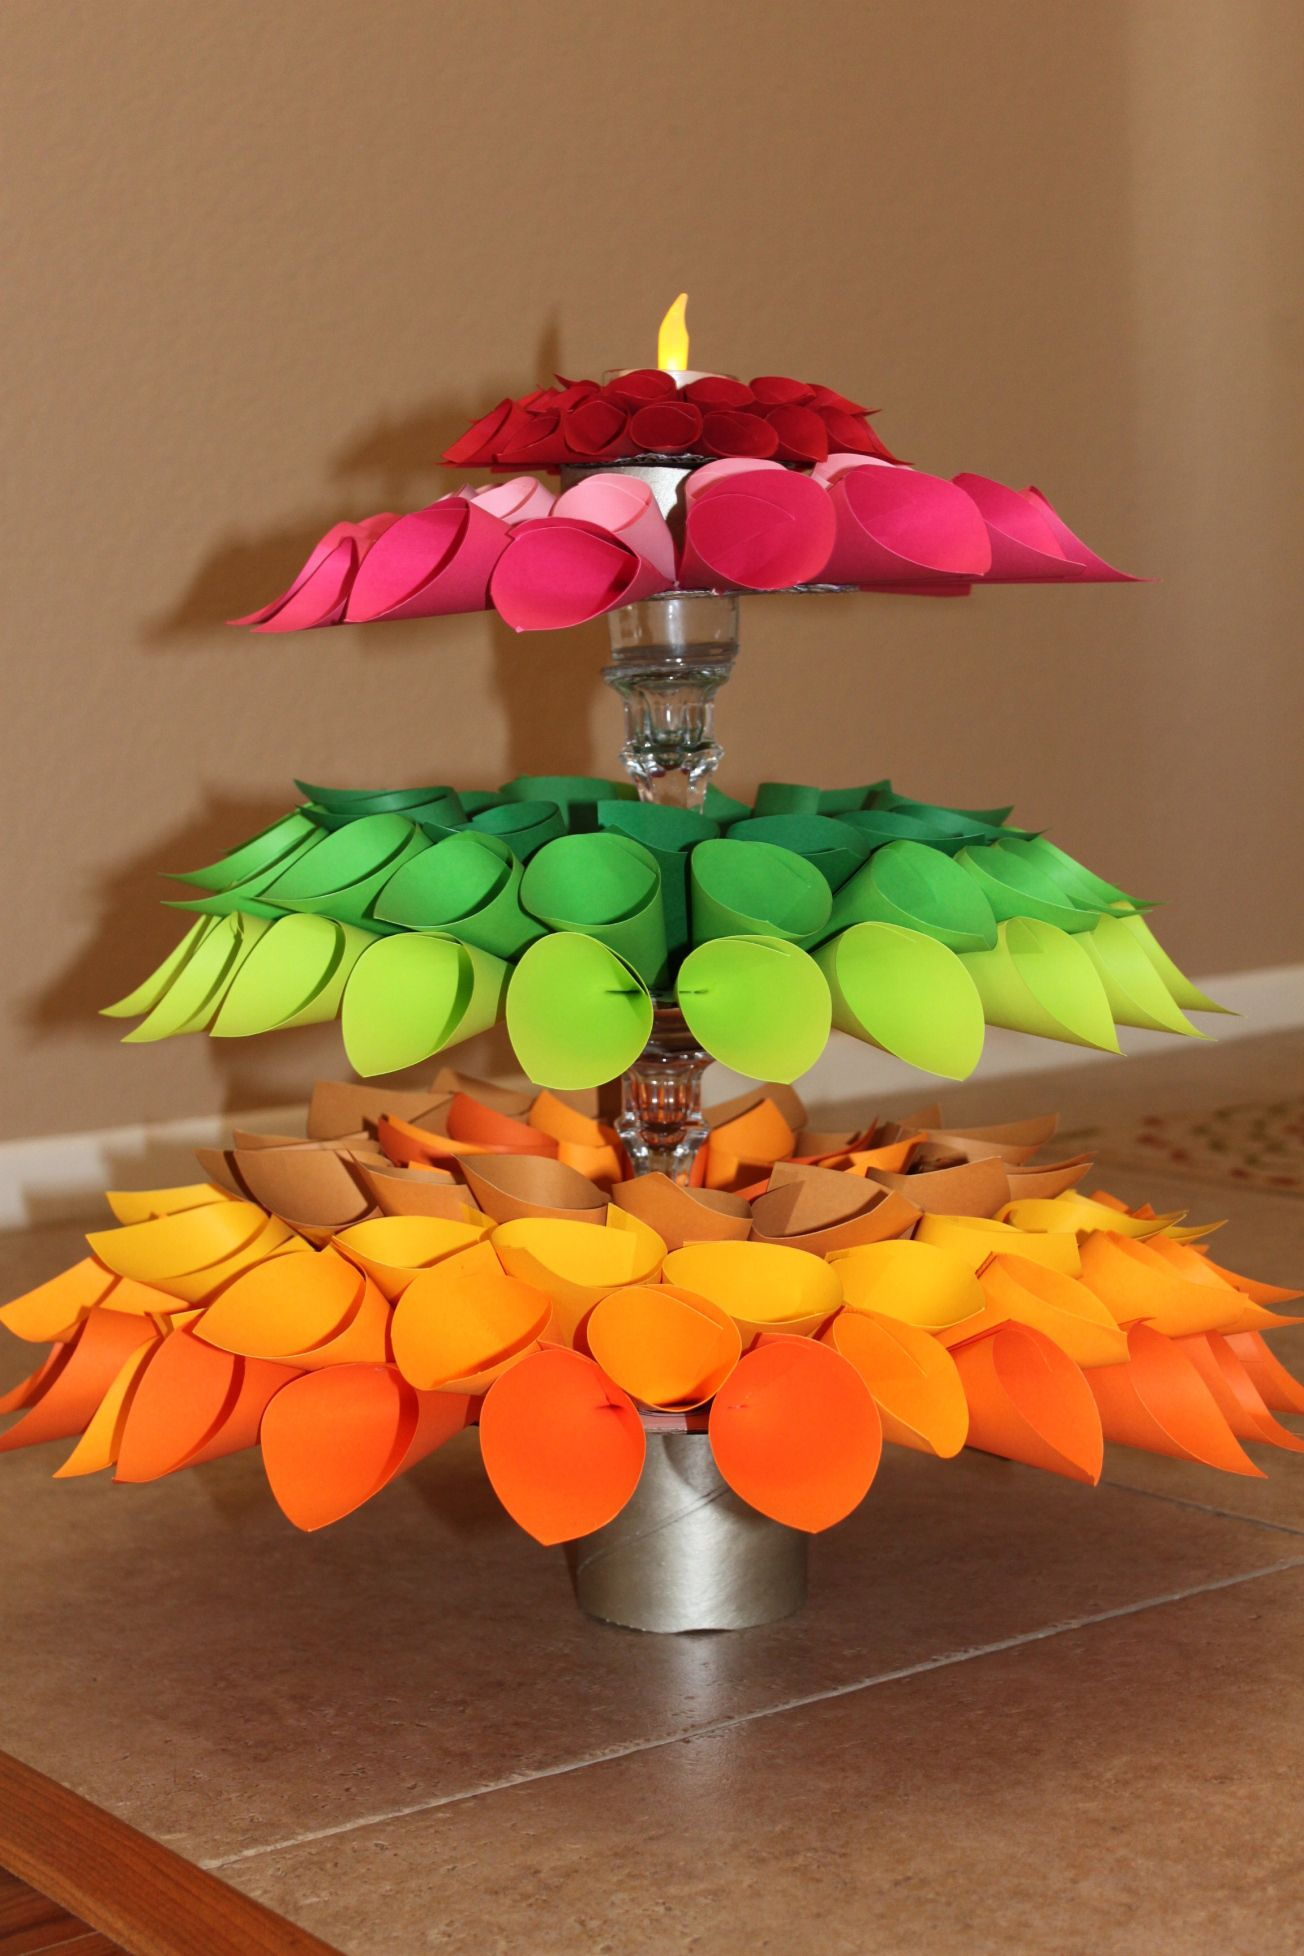 Diwali Decoration Ideas And Crafts Img 9676 Bric N Brac Pinterest Dahlia Flower And Diwali